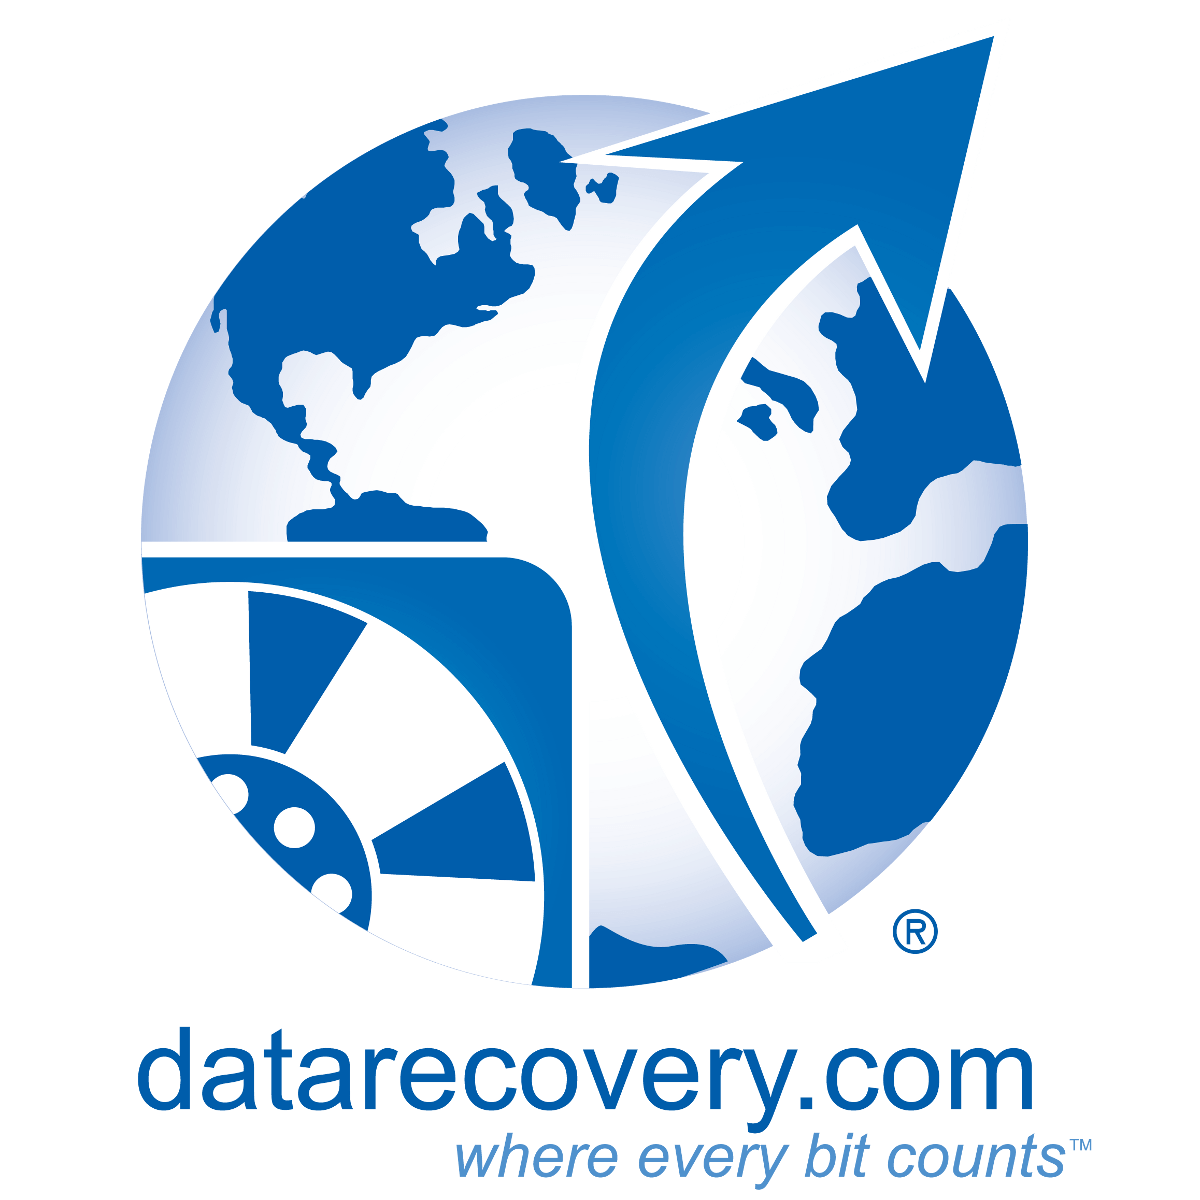 data recovery services datarecovery com